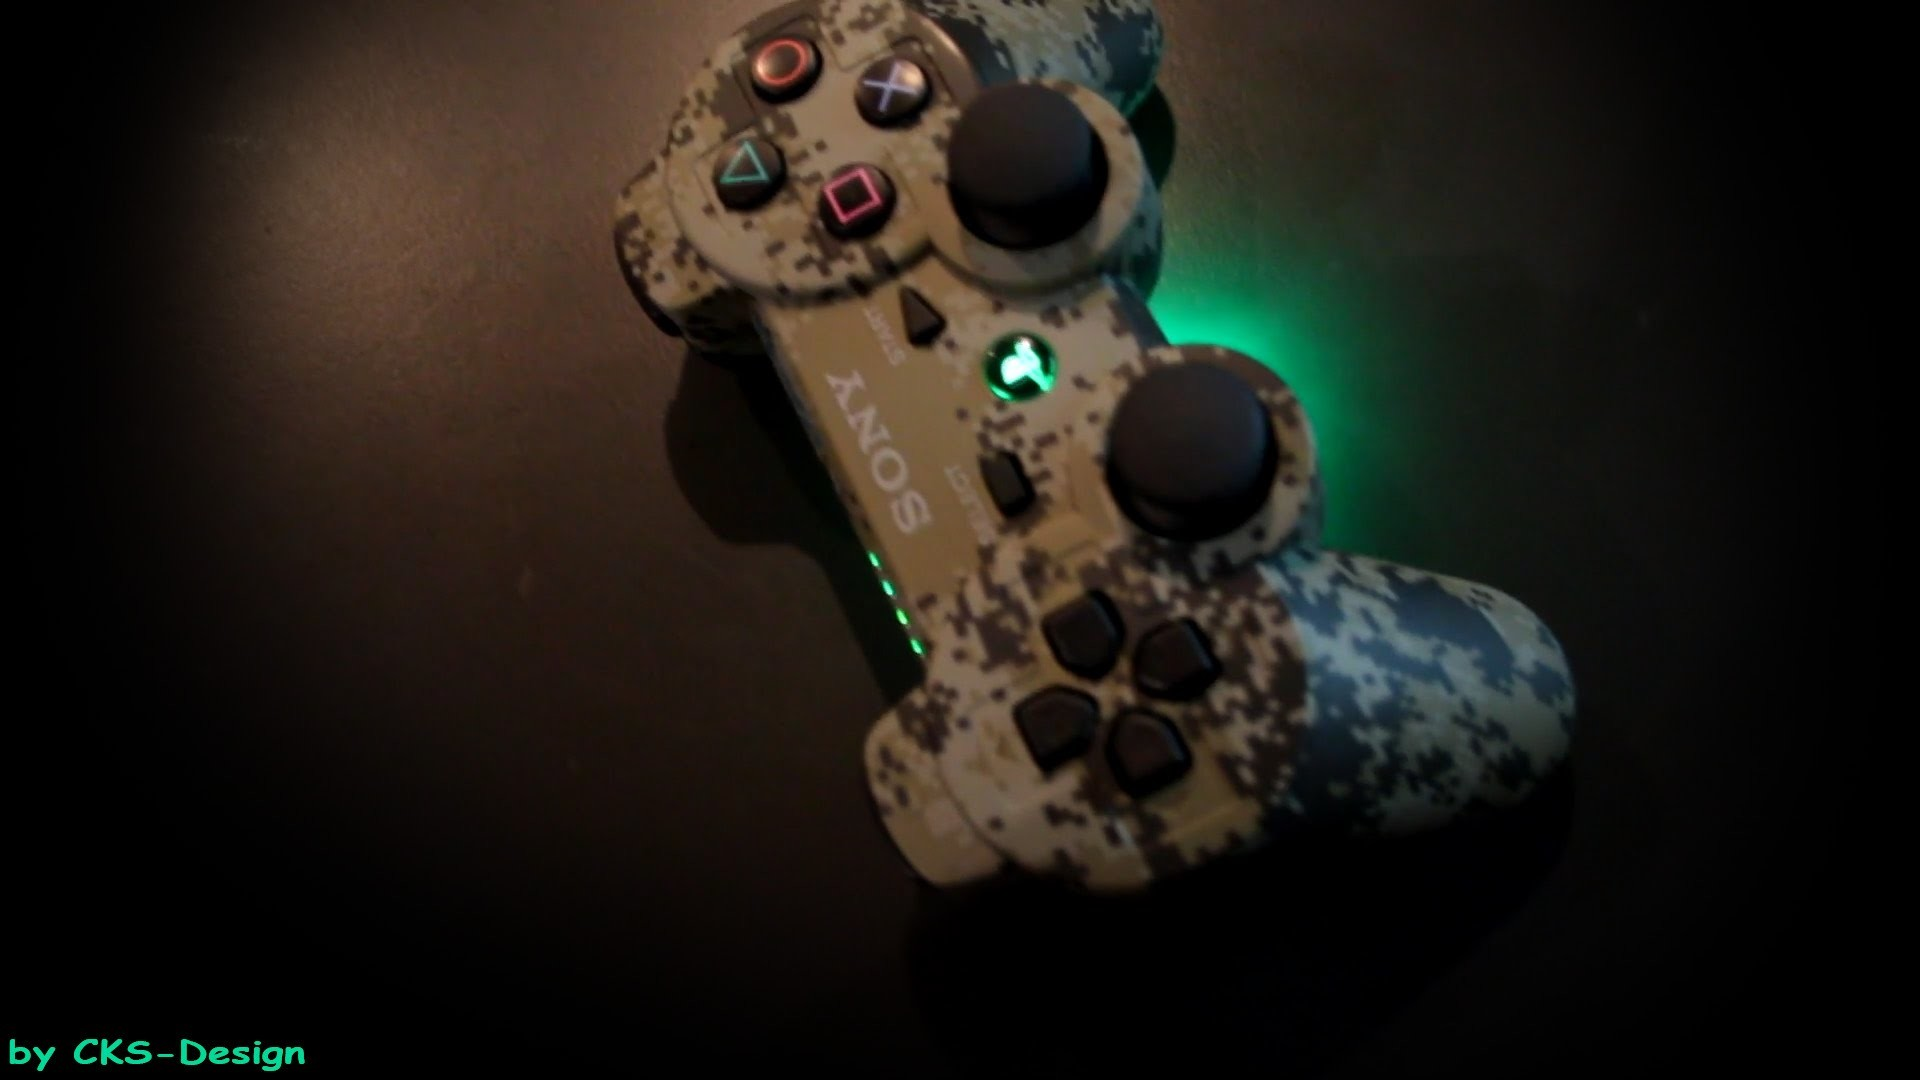 Gamer Thug Controller Hd Wallpapers: Gaming Controller Wallpaper (75+ Images